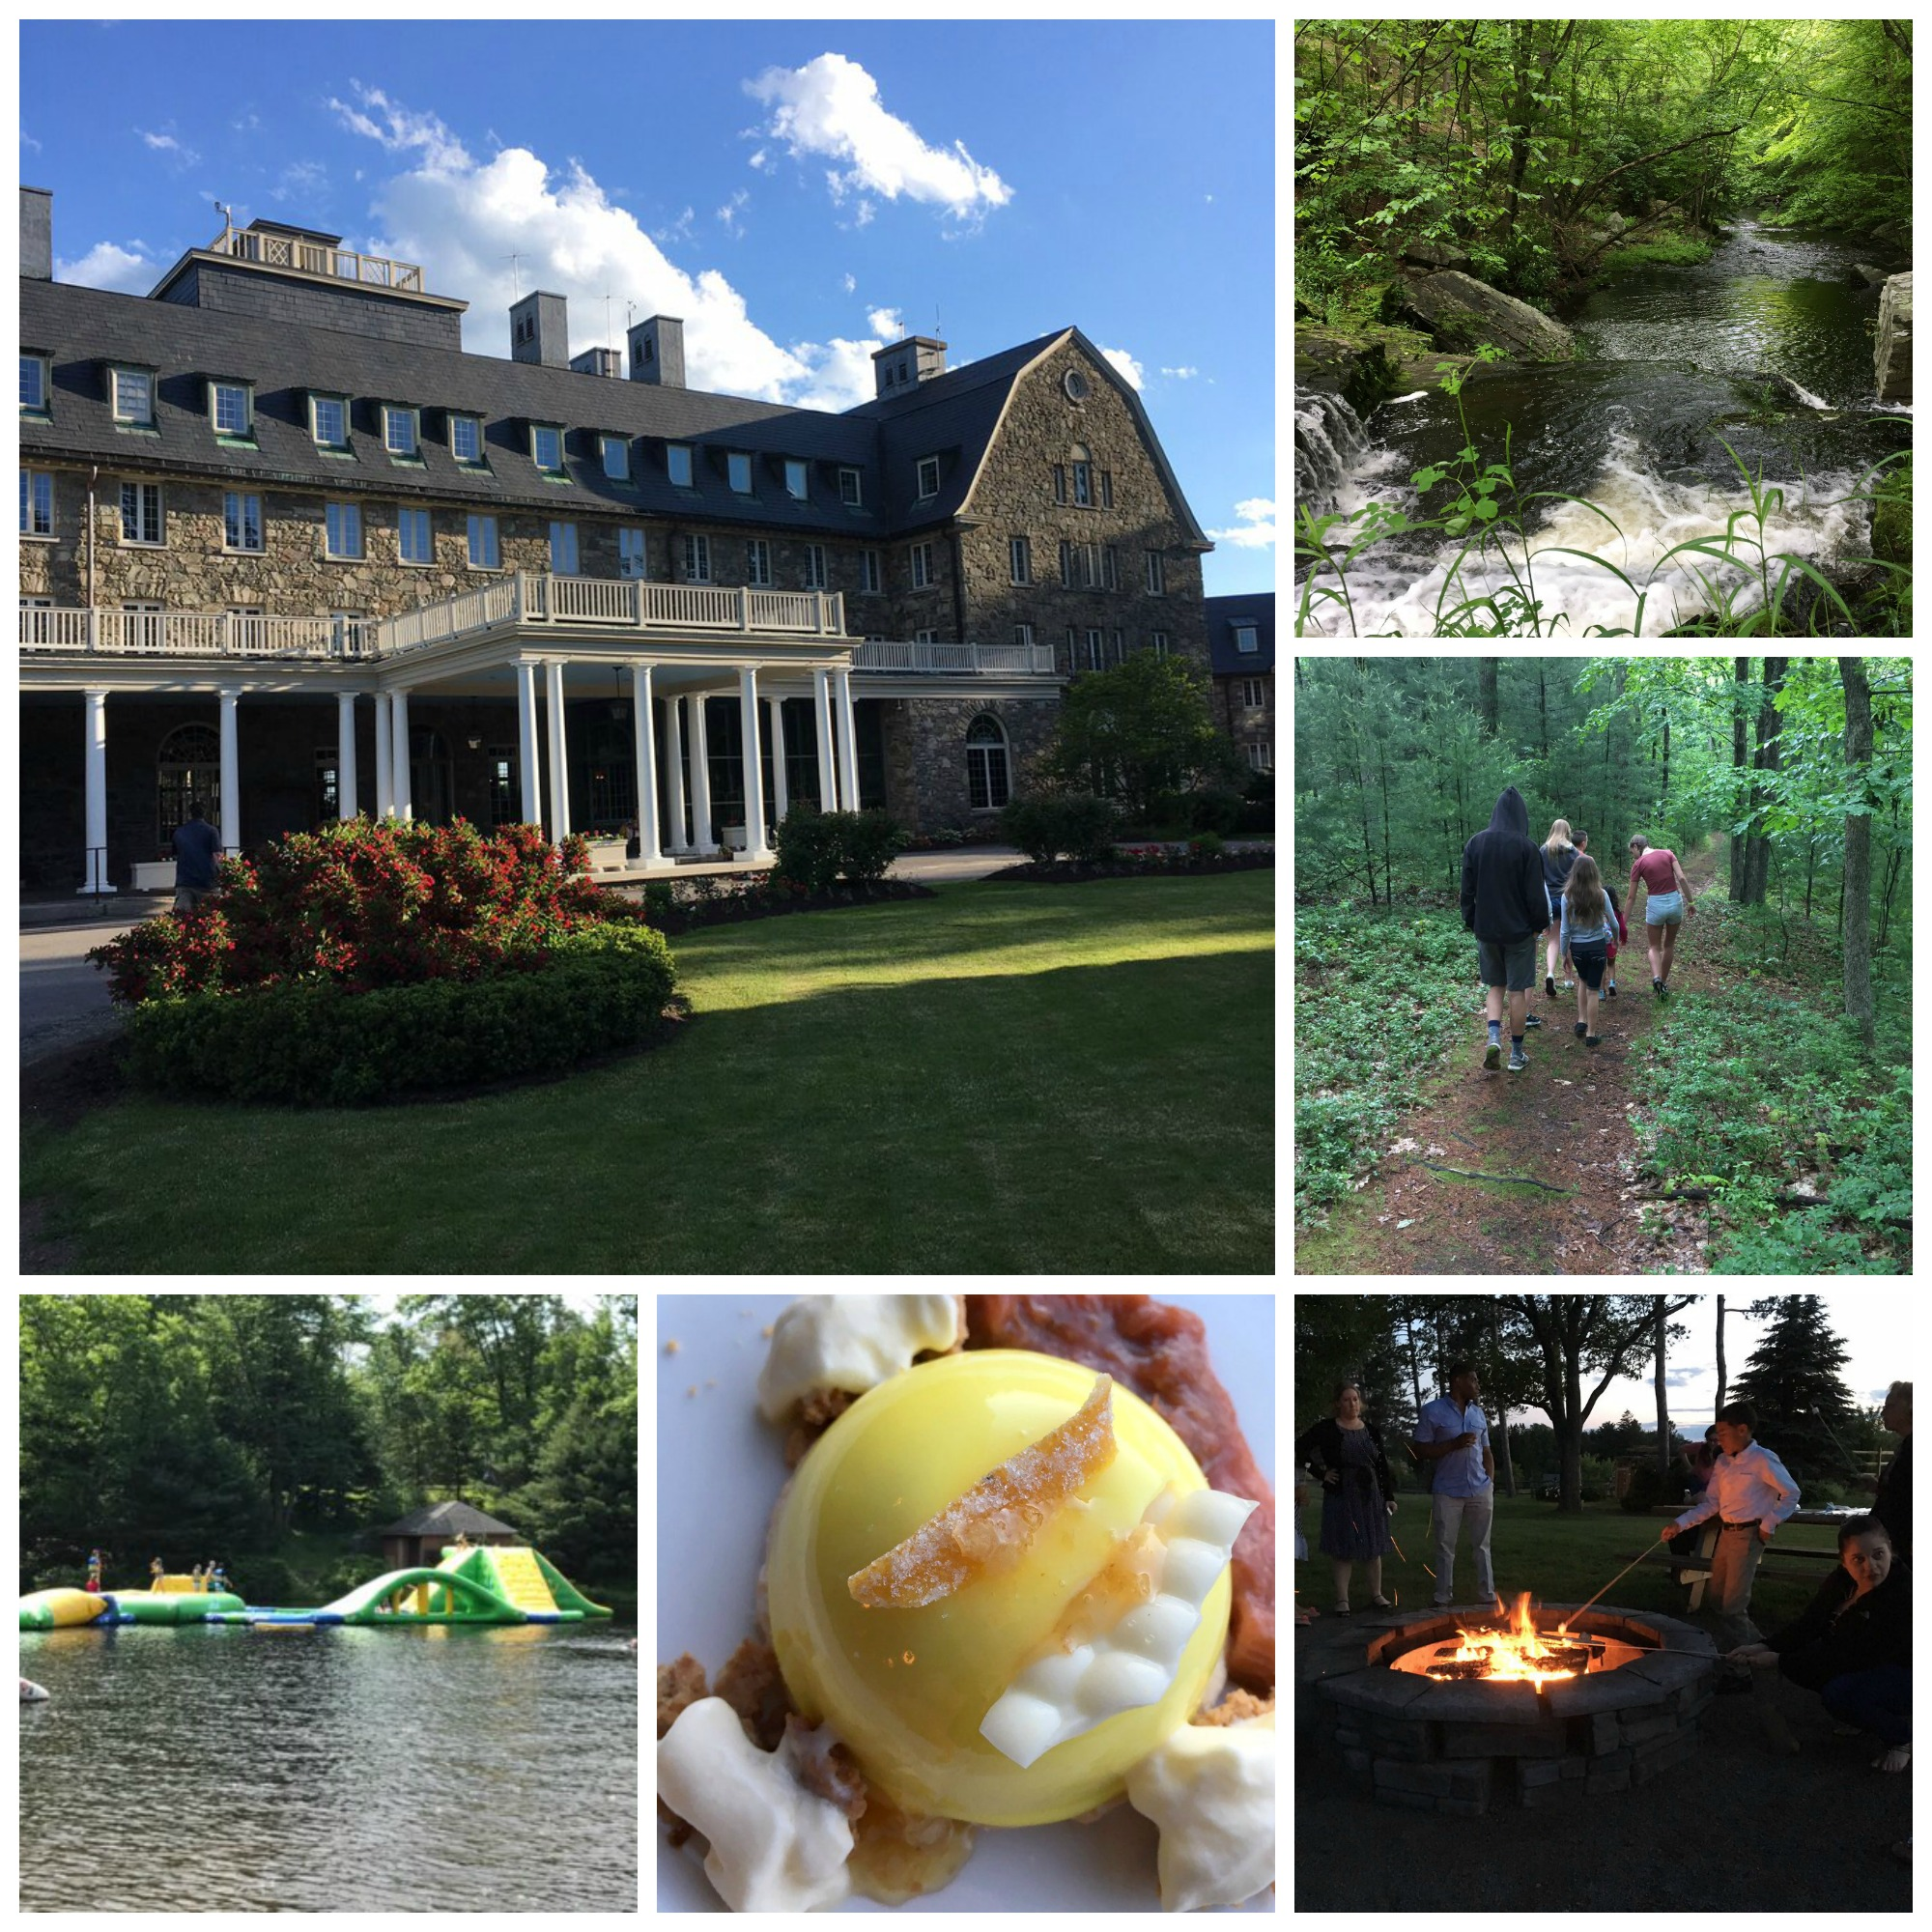 Skytop Lodge - One of the BEST family vacation resorts in the PA Poconos